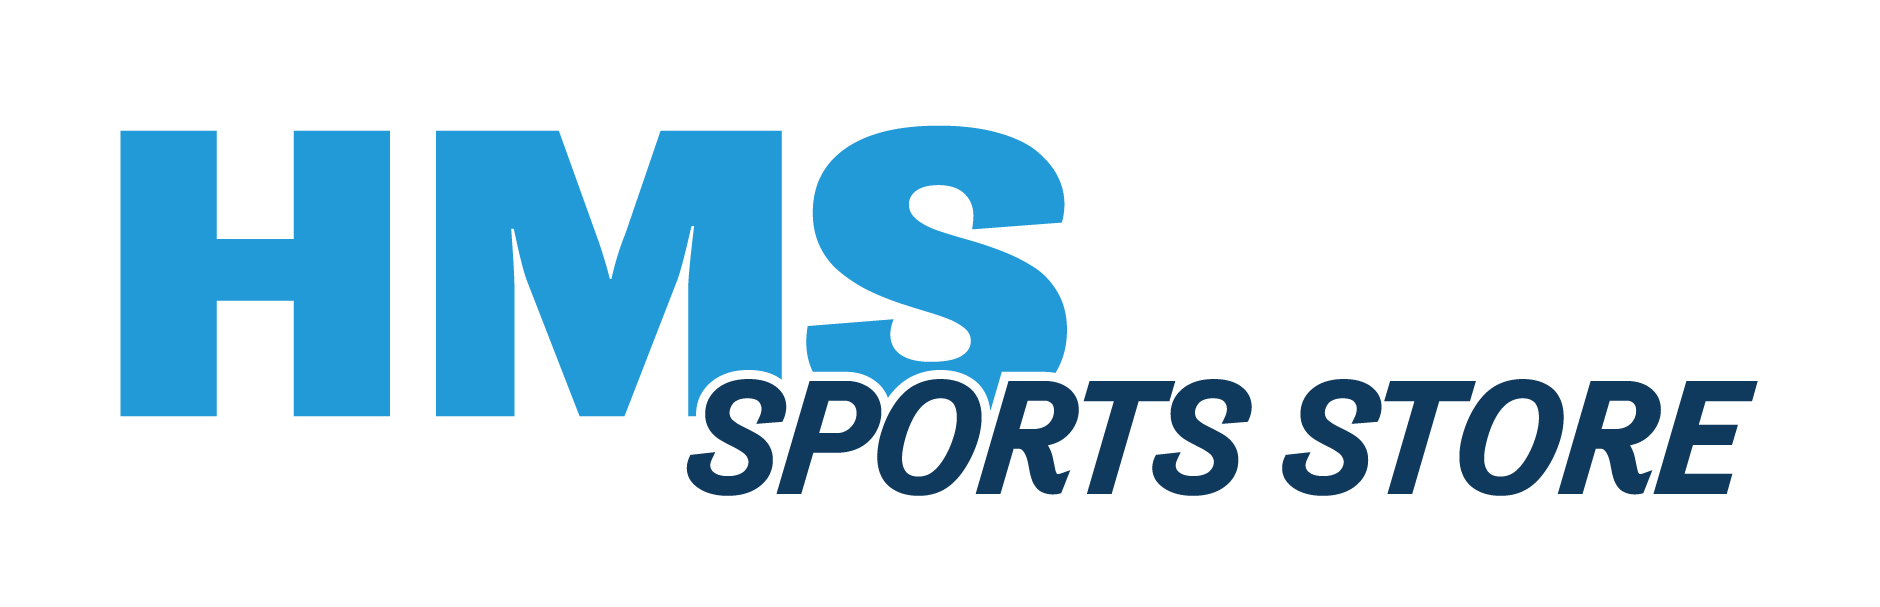 HMS Sports Consulting Lda - HMS Sports Store